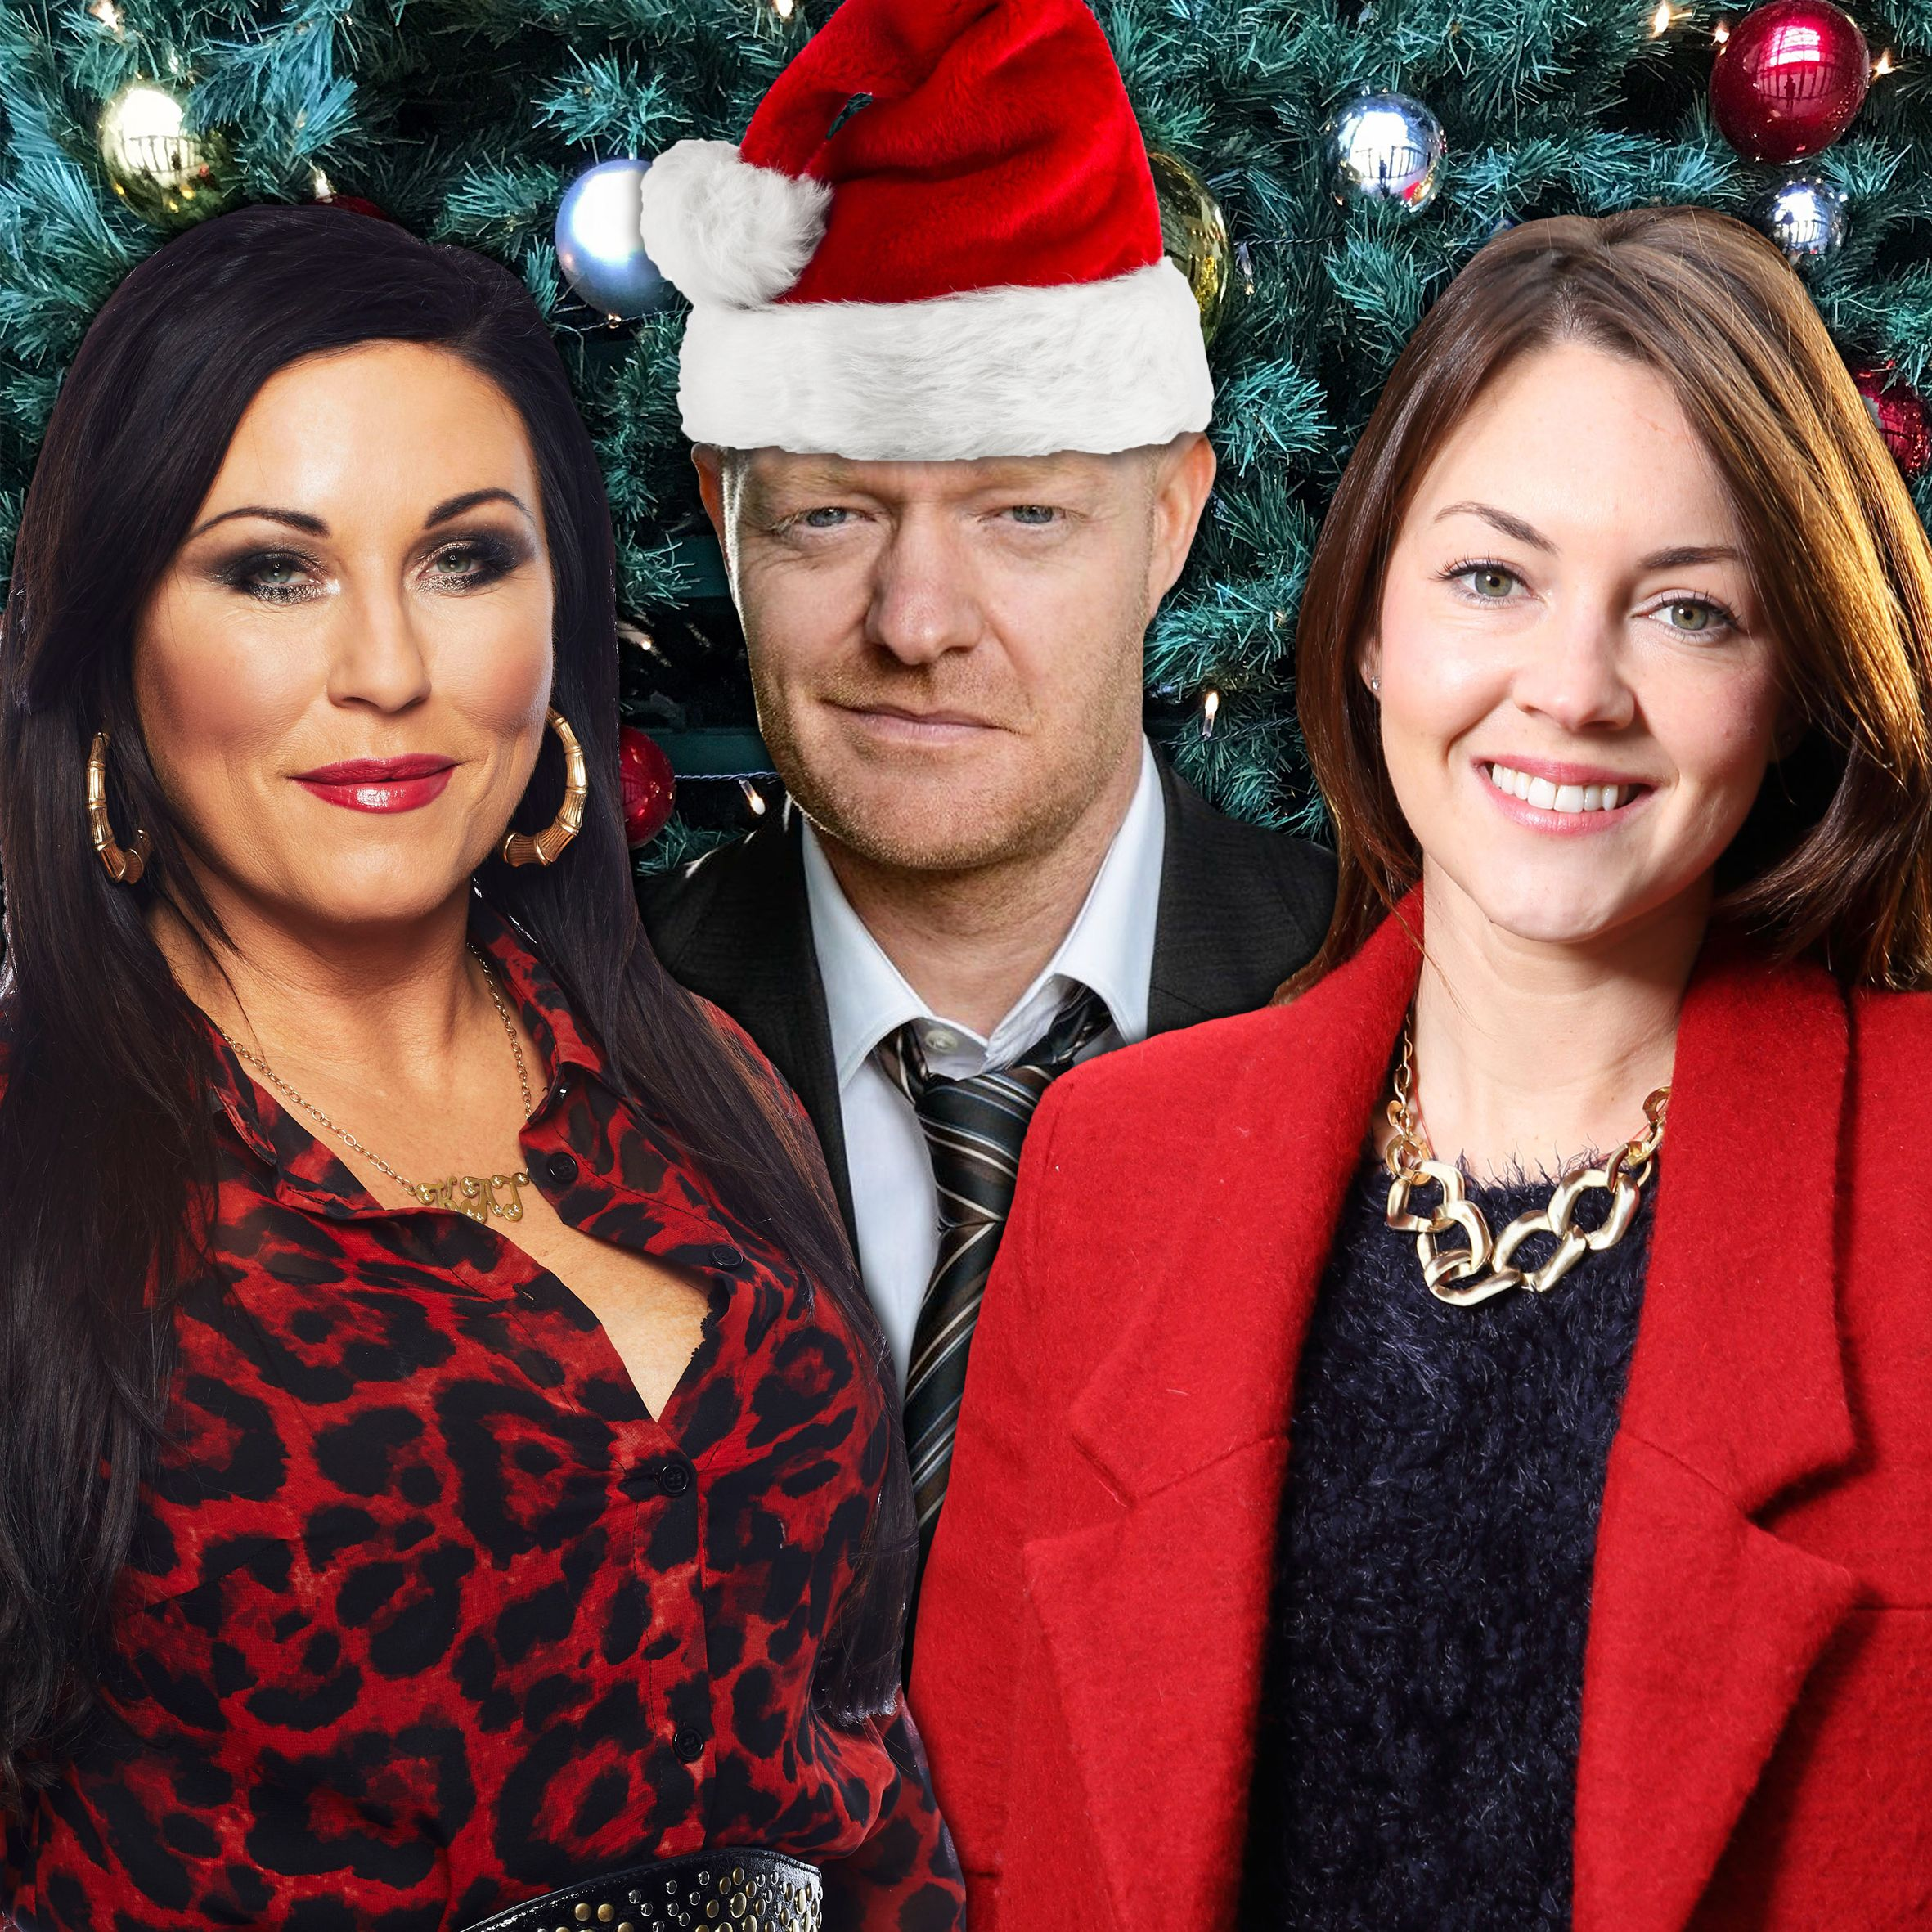 EastEnders Christmas gift guide 2019 - all the best books and merchandise for fans of the soap